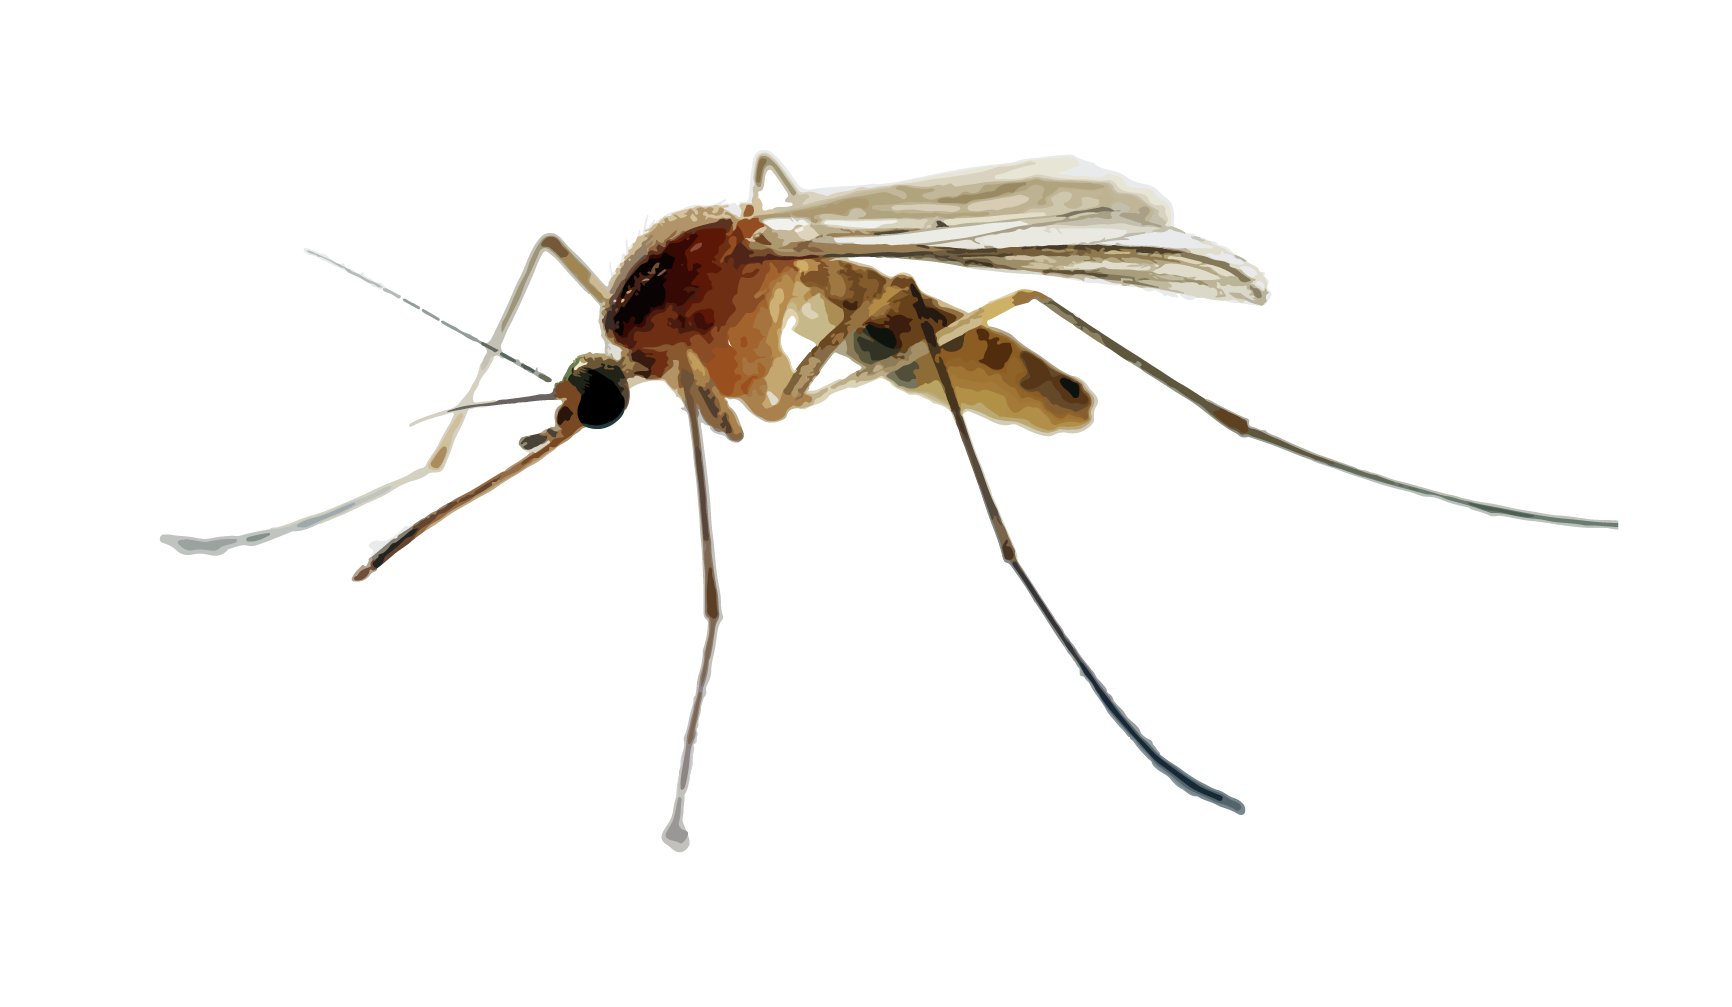 - Visual Description: slender, long-legged, winged insects with long, piercing mouthparts.Size: 1/8″ – 1/4″ longHabitat: Mosquito larvae are aquatic meaning the adults will stay within a few miles to a few hundred feet from a water source during its lifespan, depending on the species. Water sources range from saltwater marshes to anything bigger than a thimble left out on the side of your house. Once matured, adults will rest in shady areas protected from the wind including vegetation, patios and front entryways.Food: Female mosquitoes require the protein from blood to reproduce. An average mosquito blood-meal can take 1-4 ml of blood which can be 2.5 times the mosquitoes unfed weight.How did they get in my house?: Typical entry points are through windows or doorways especially as doors are pulled open bringing in outside air, and anything flying through it.Reproduction: A single female mosquito may produce 500 to 5000 eggs in its lifetime, half of them being female. The entire development cycle, egg to adult, takes only 10 to 16 days.Danger Level: Mosquito bites can cause itchy, red bumps. More than an outdoor nuisance, mosquitoes are a concern to public health as vectors for malaria, encephalitis, West Nile virus, yellow fever, chikungunya and zika.